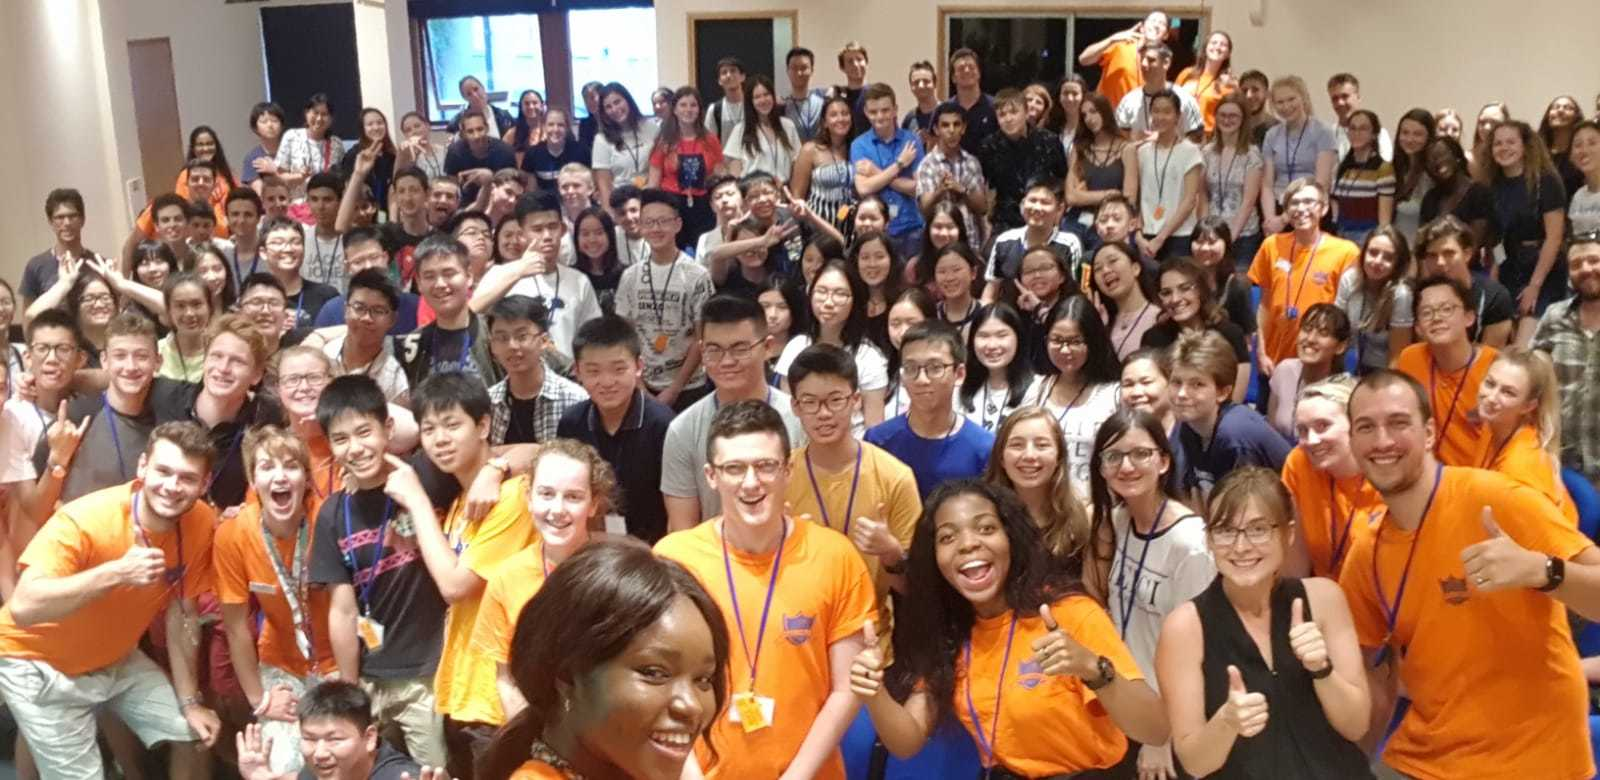 A wide-angle selfie of all of the students from a summer program. The Reach staff are at the front in orange T-shirts, looking happy and excited. The students are all standing behind, smiling.